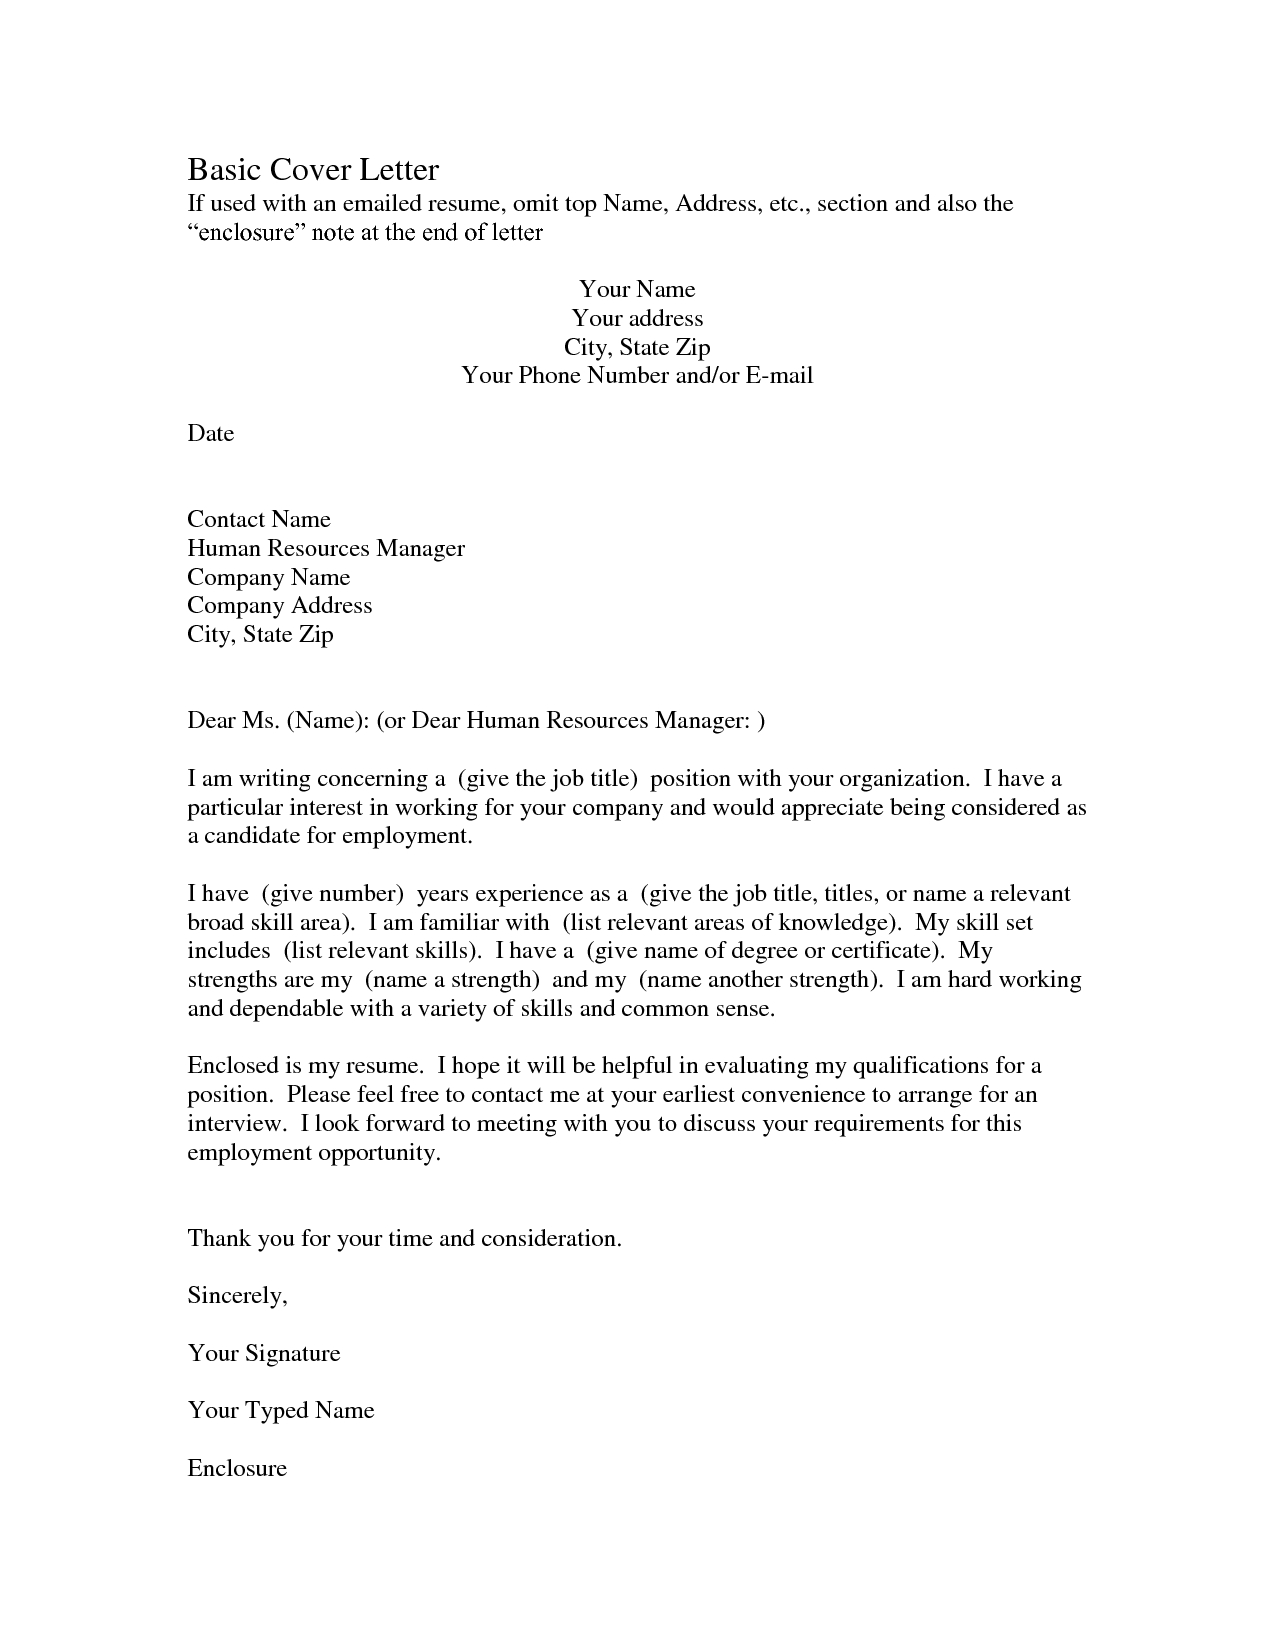 Cleaning Business Introduction Letter Template - Covering Letter Example Simple Cover Letter Examplesimple Cover